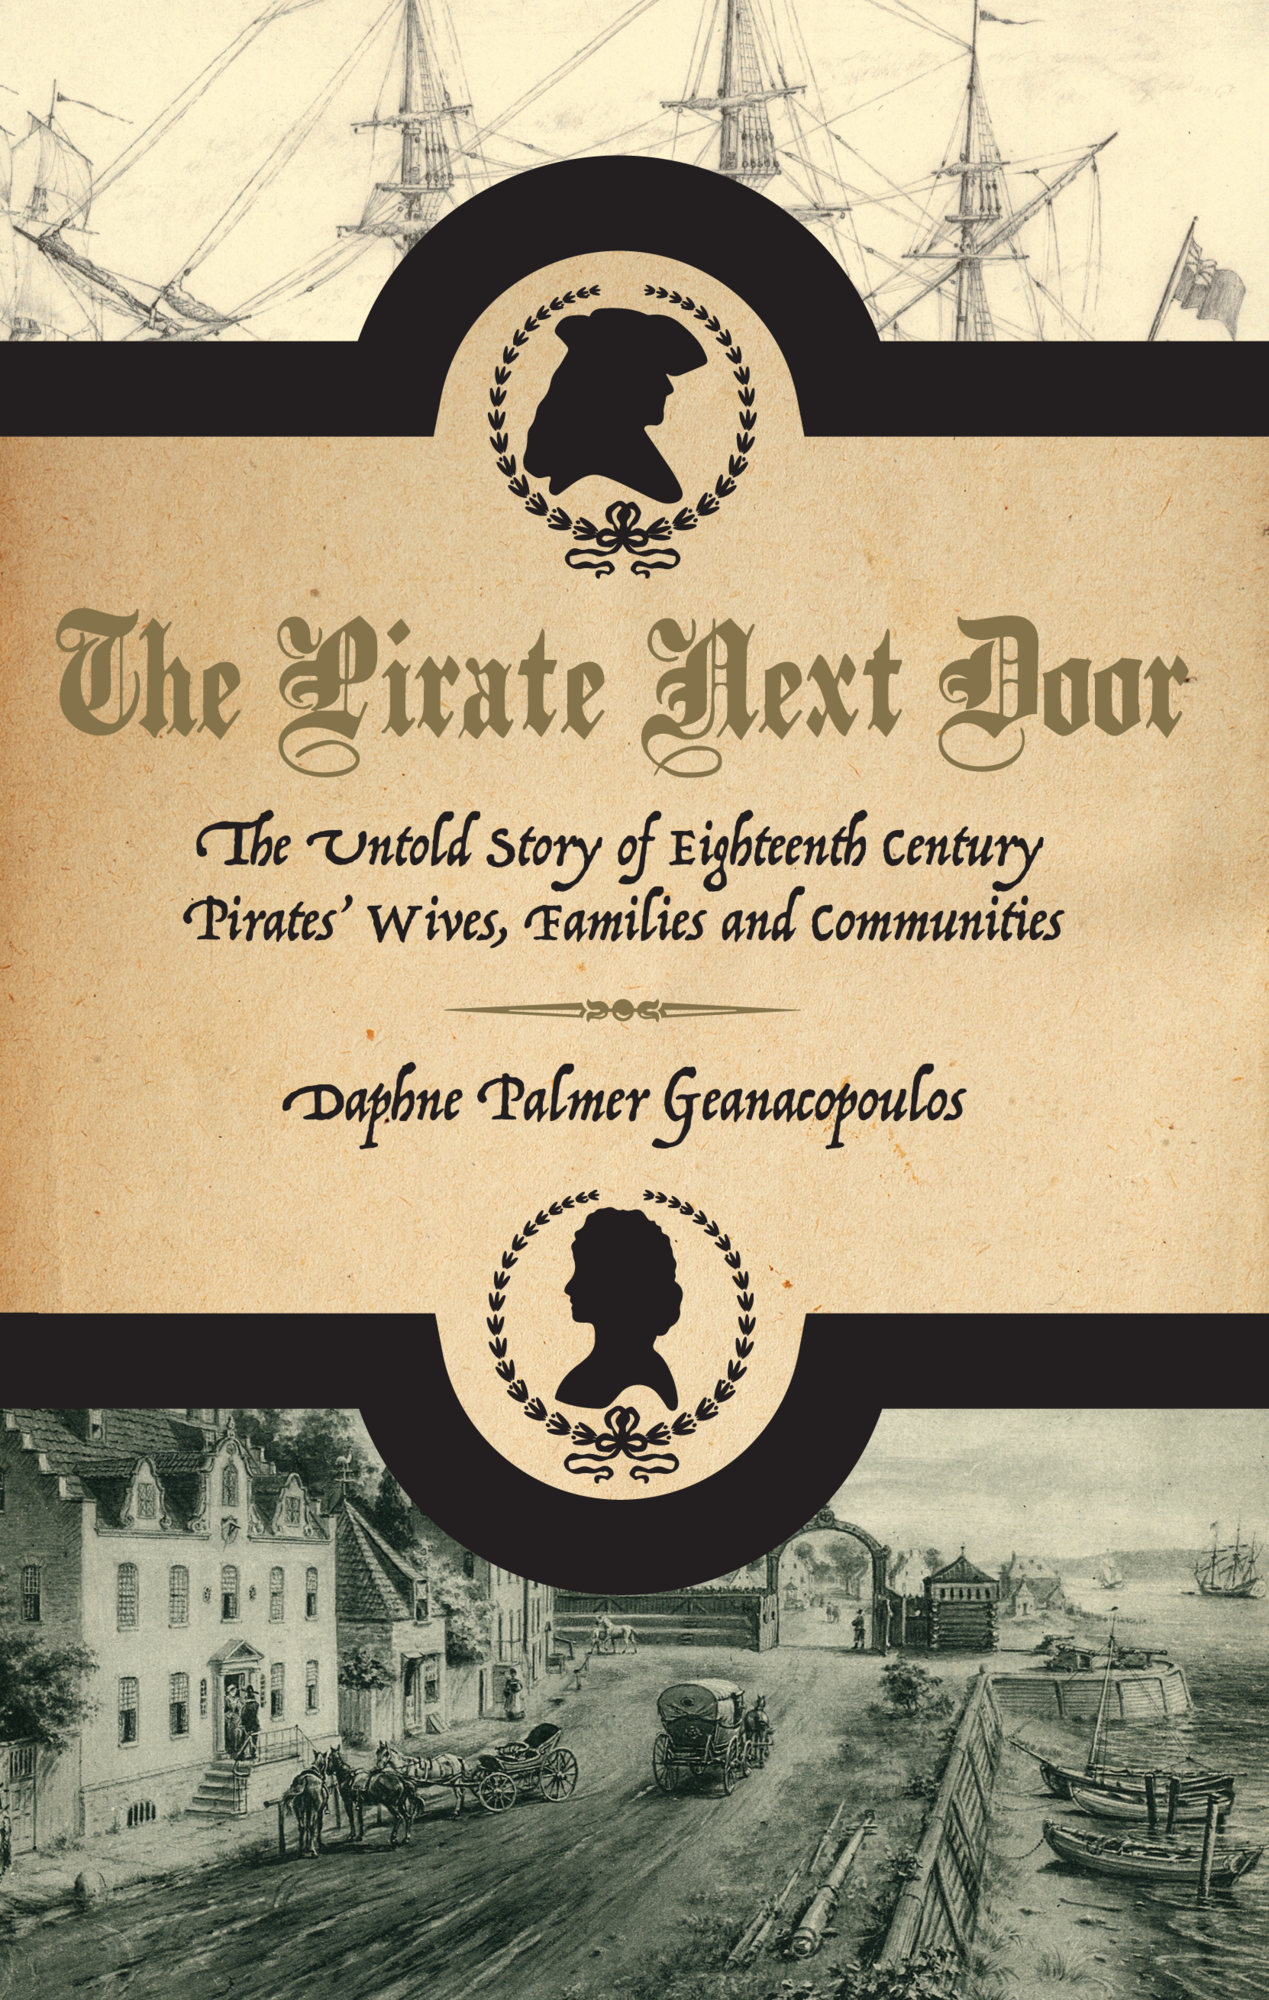 The Pirate Next Door: The Untold Story of Eighteenth Century Pirates' Wives, Families and Communities